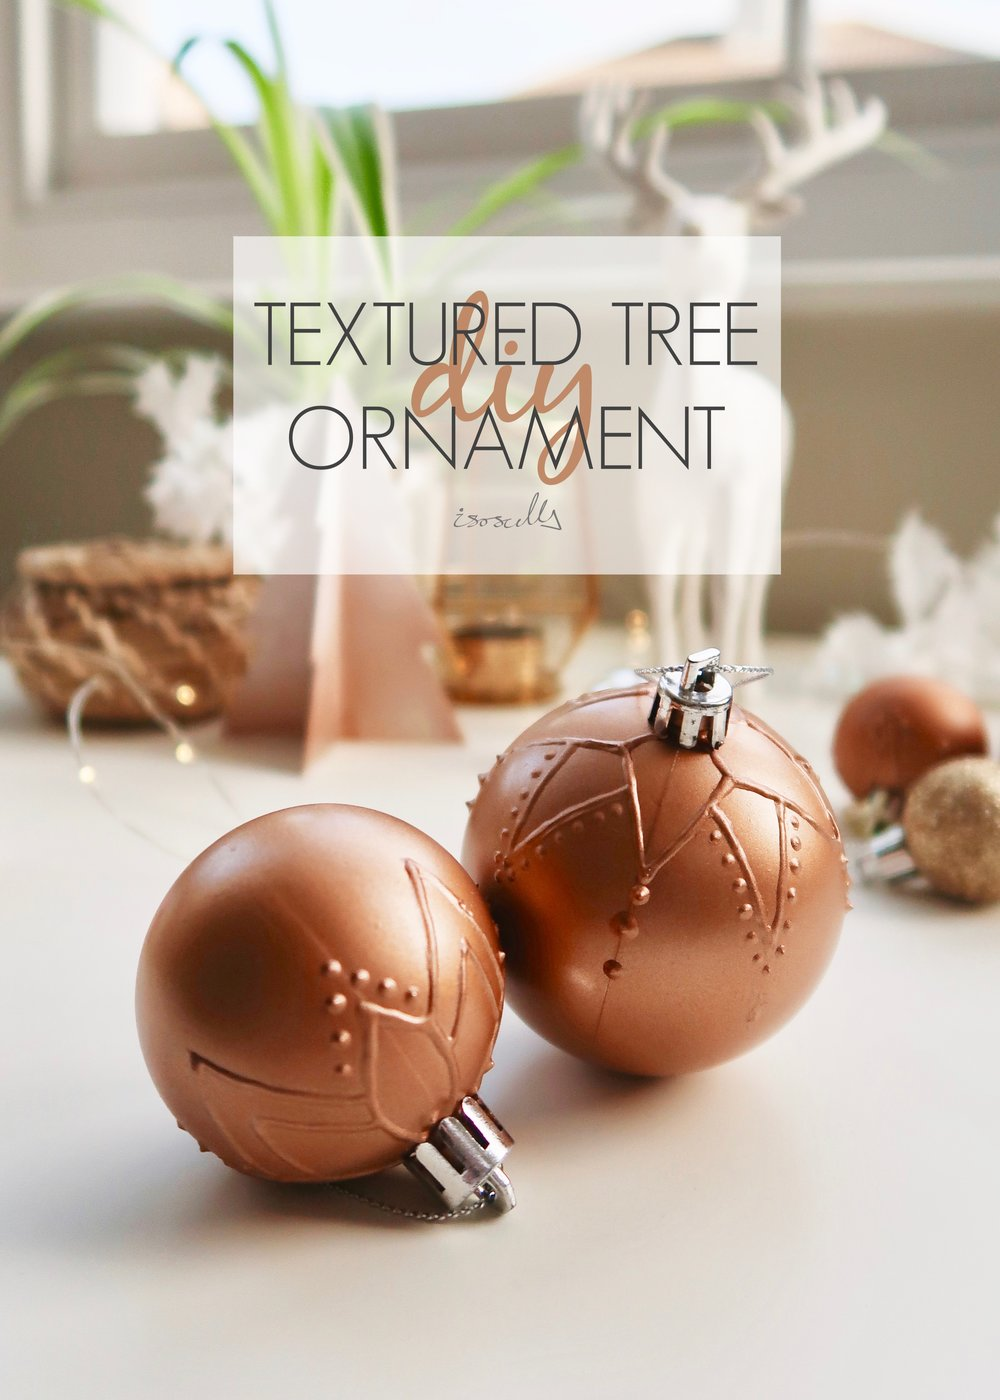 DIY Mandala Textured Tree Ornament by Isoscella